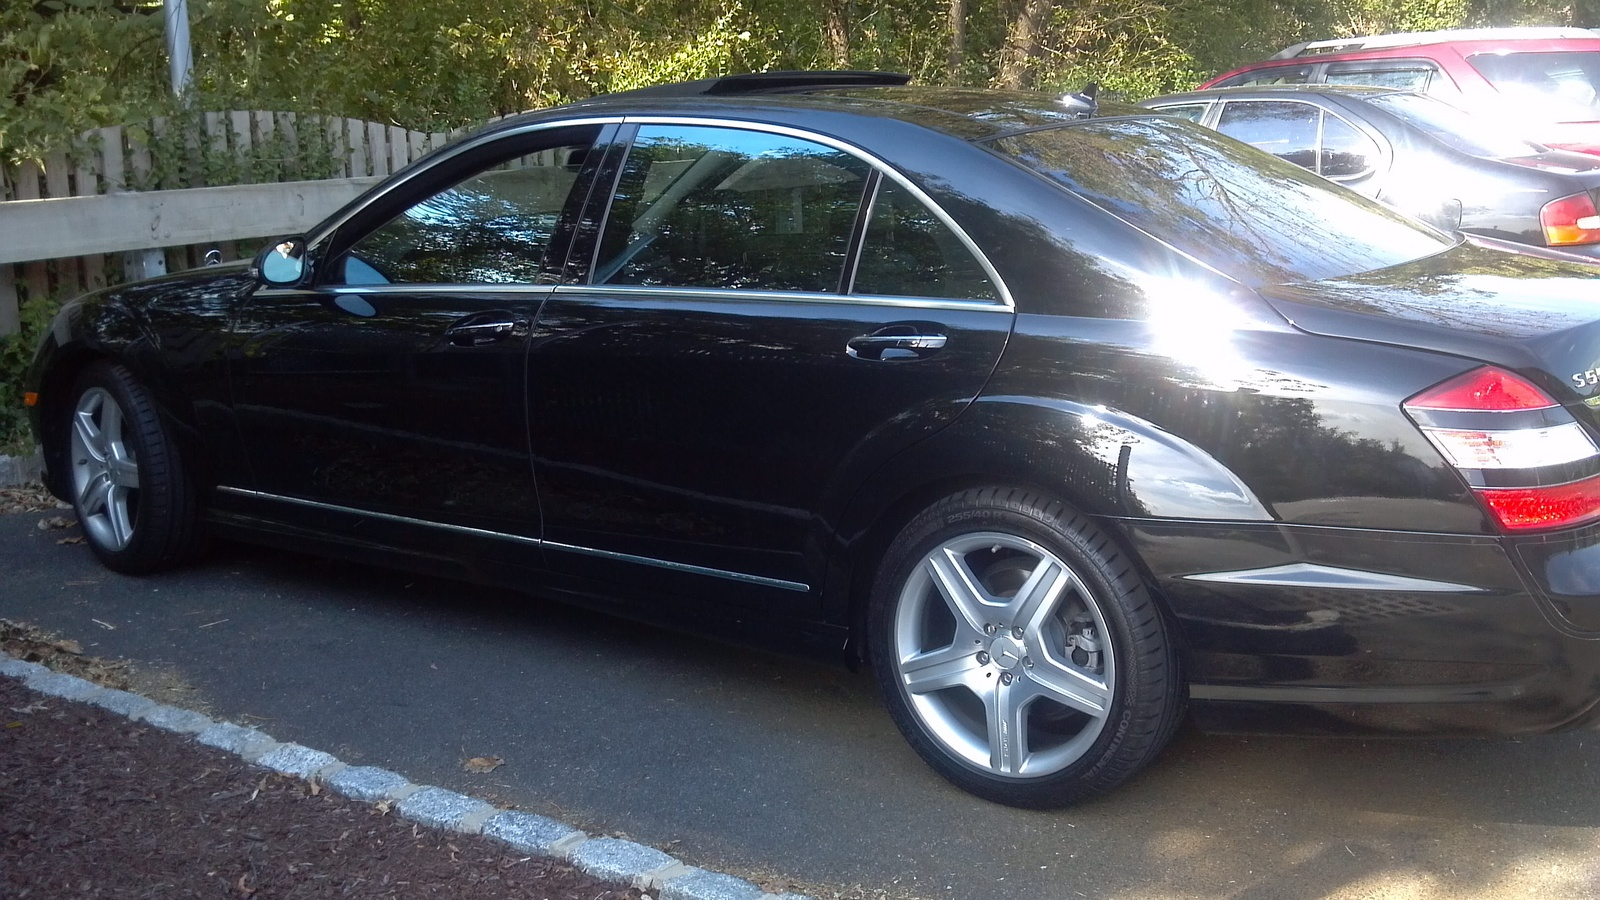 2008 mercedes benz s class pictures cargurus for Mercedes benz s class specifications